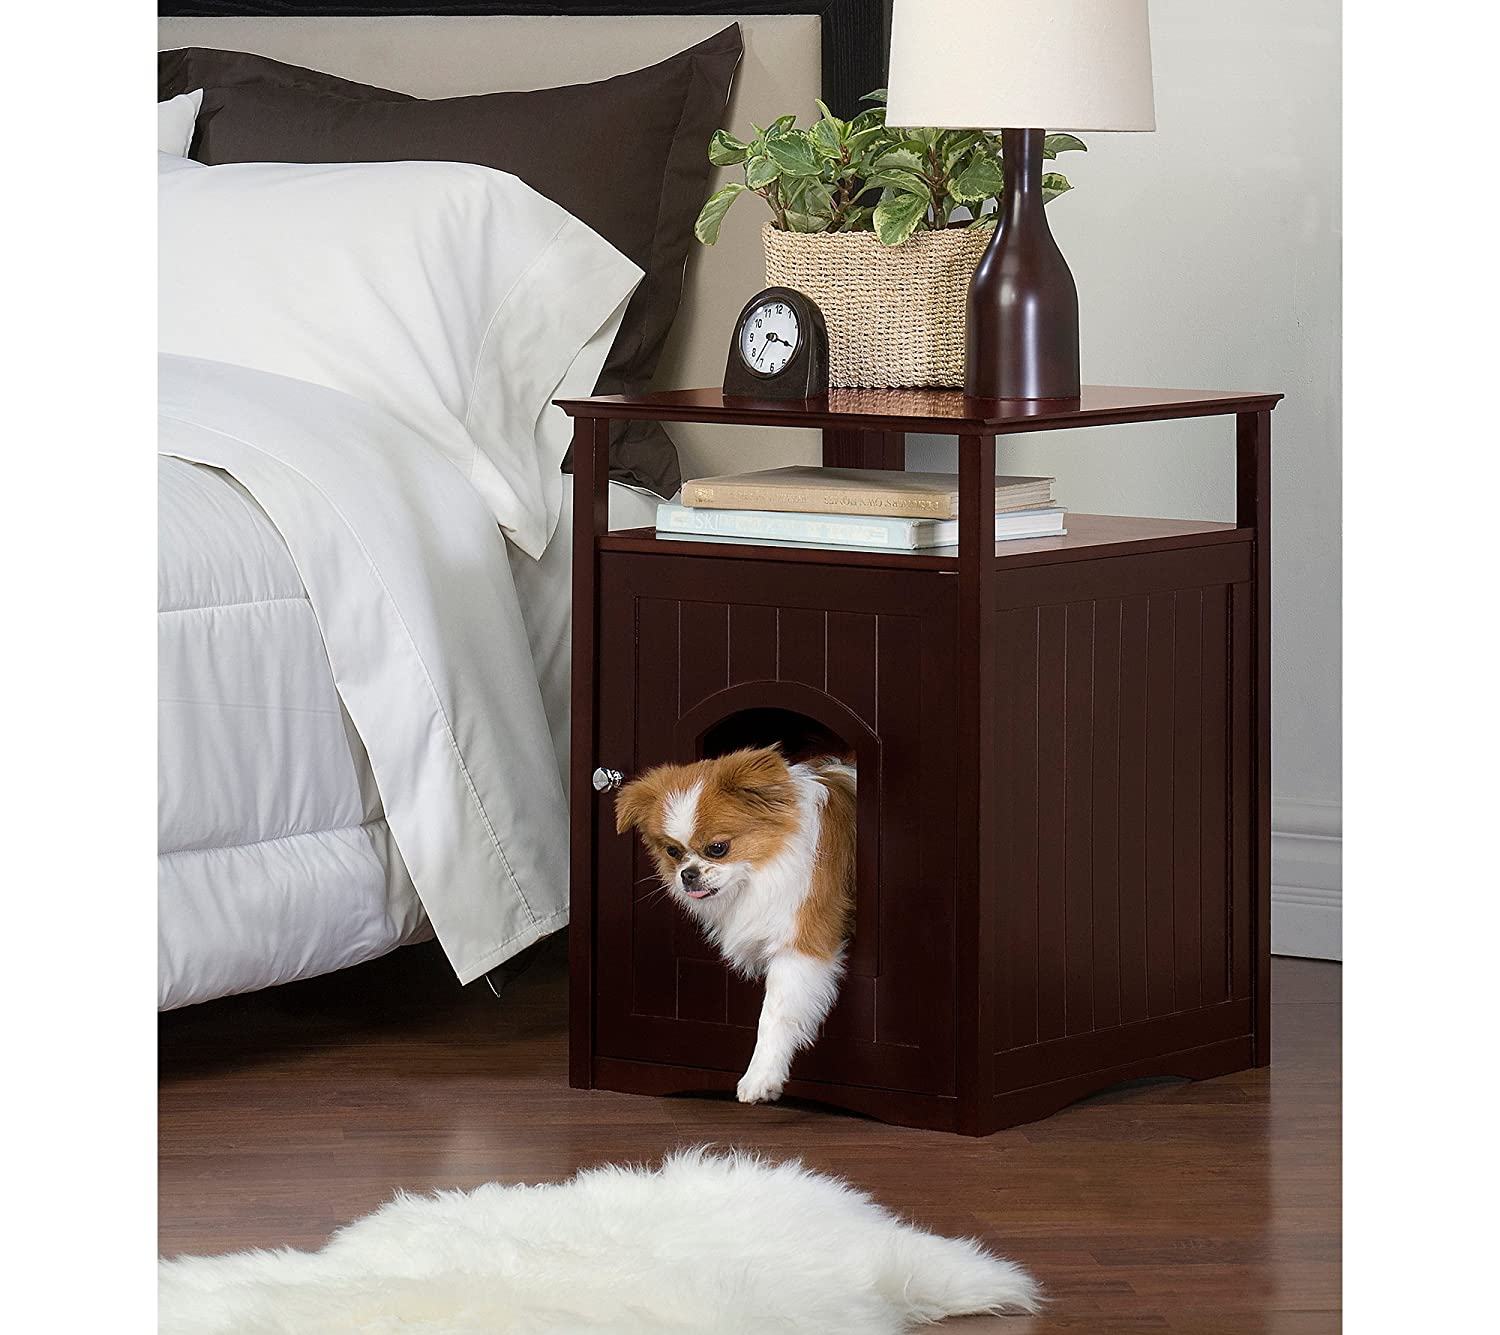 Amazon.com: Merry Products Nightstand Pet House/Cat Litter Box Cover  Walnut: Pet Supplies